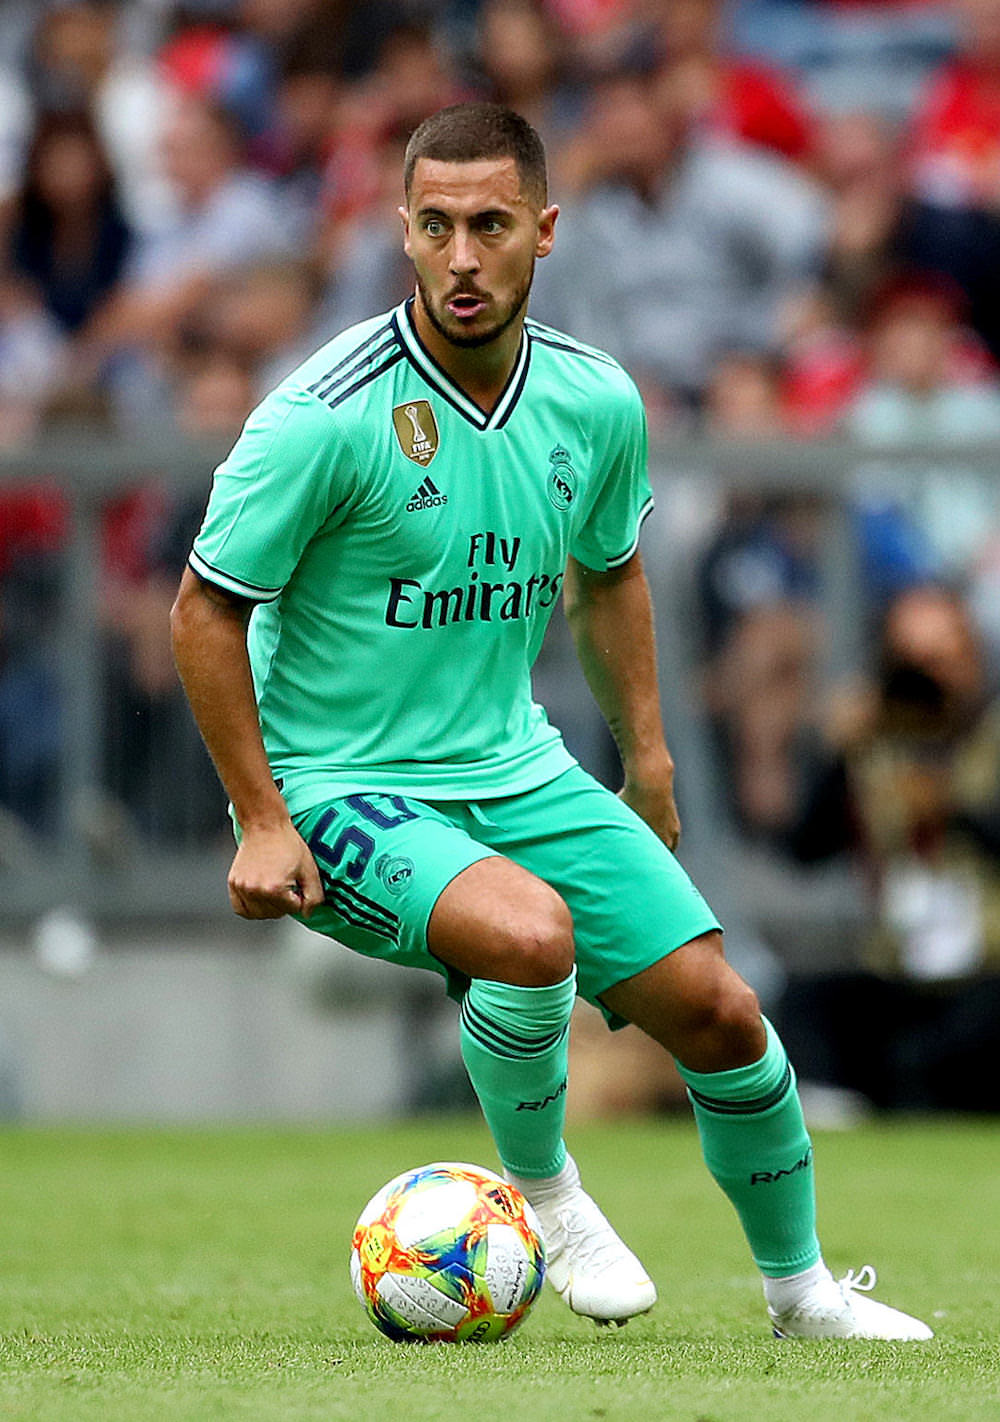 Eden_Hazard_during_a_Real_Madrid_game_football4football